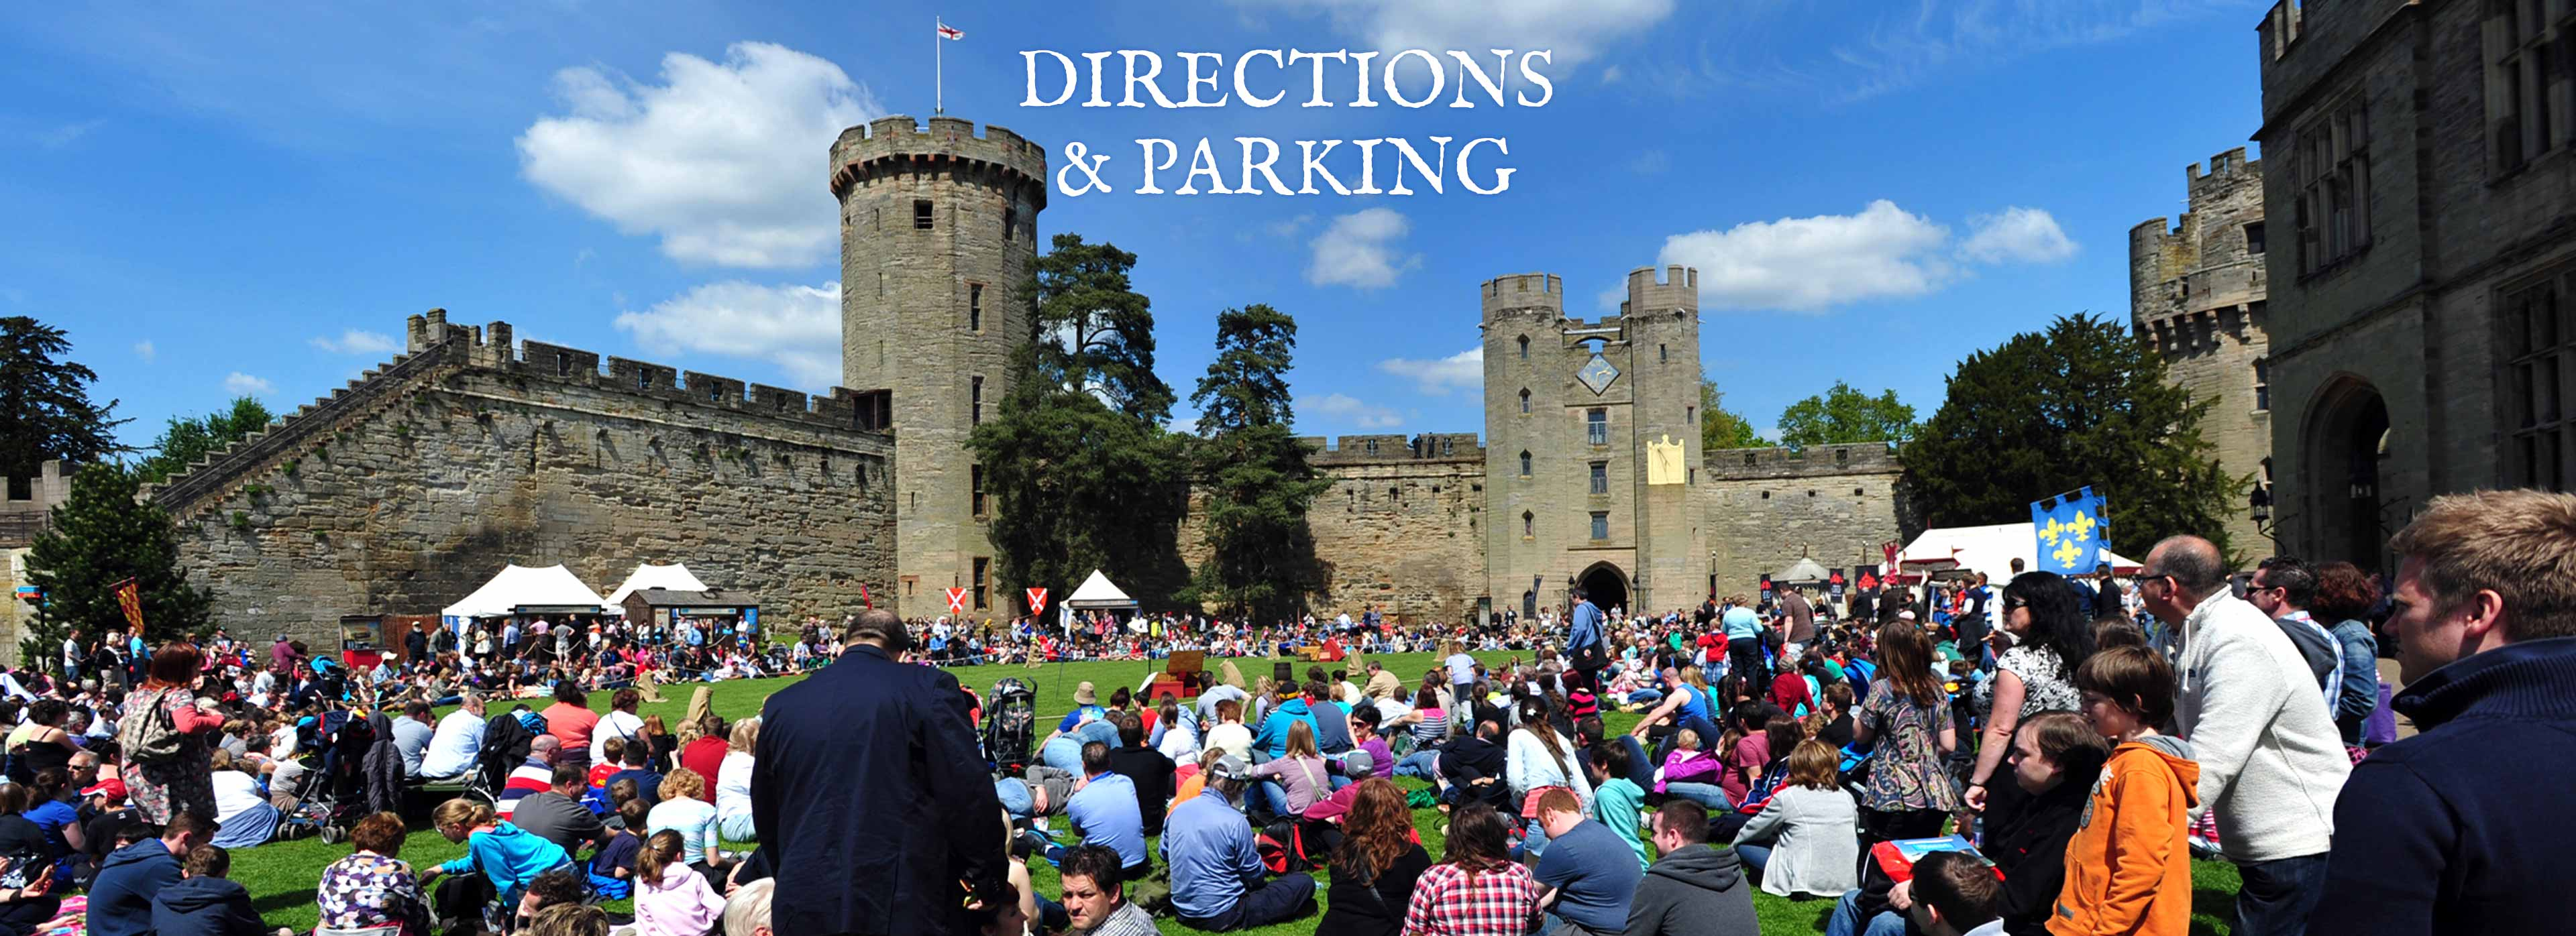 How to get to Warwick Castle